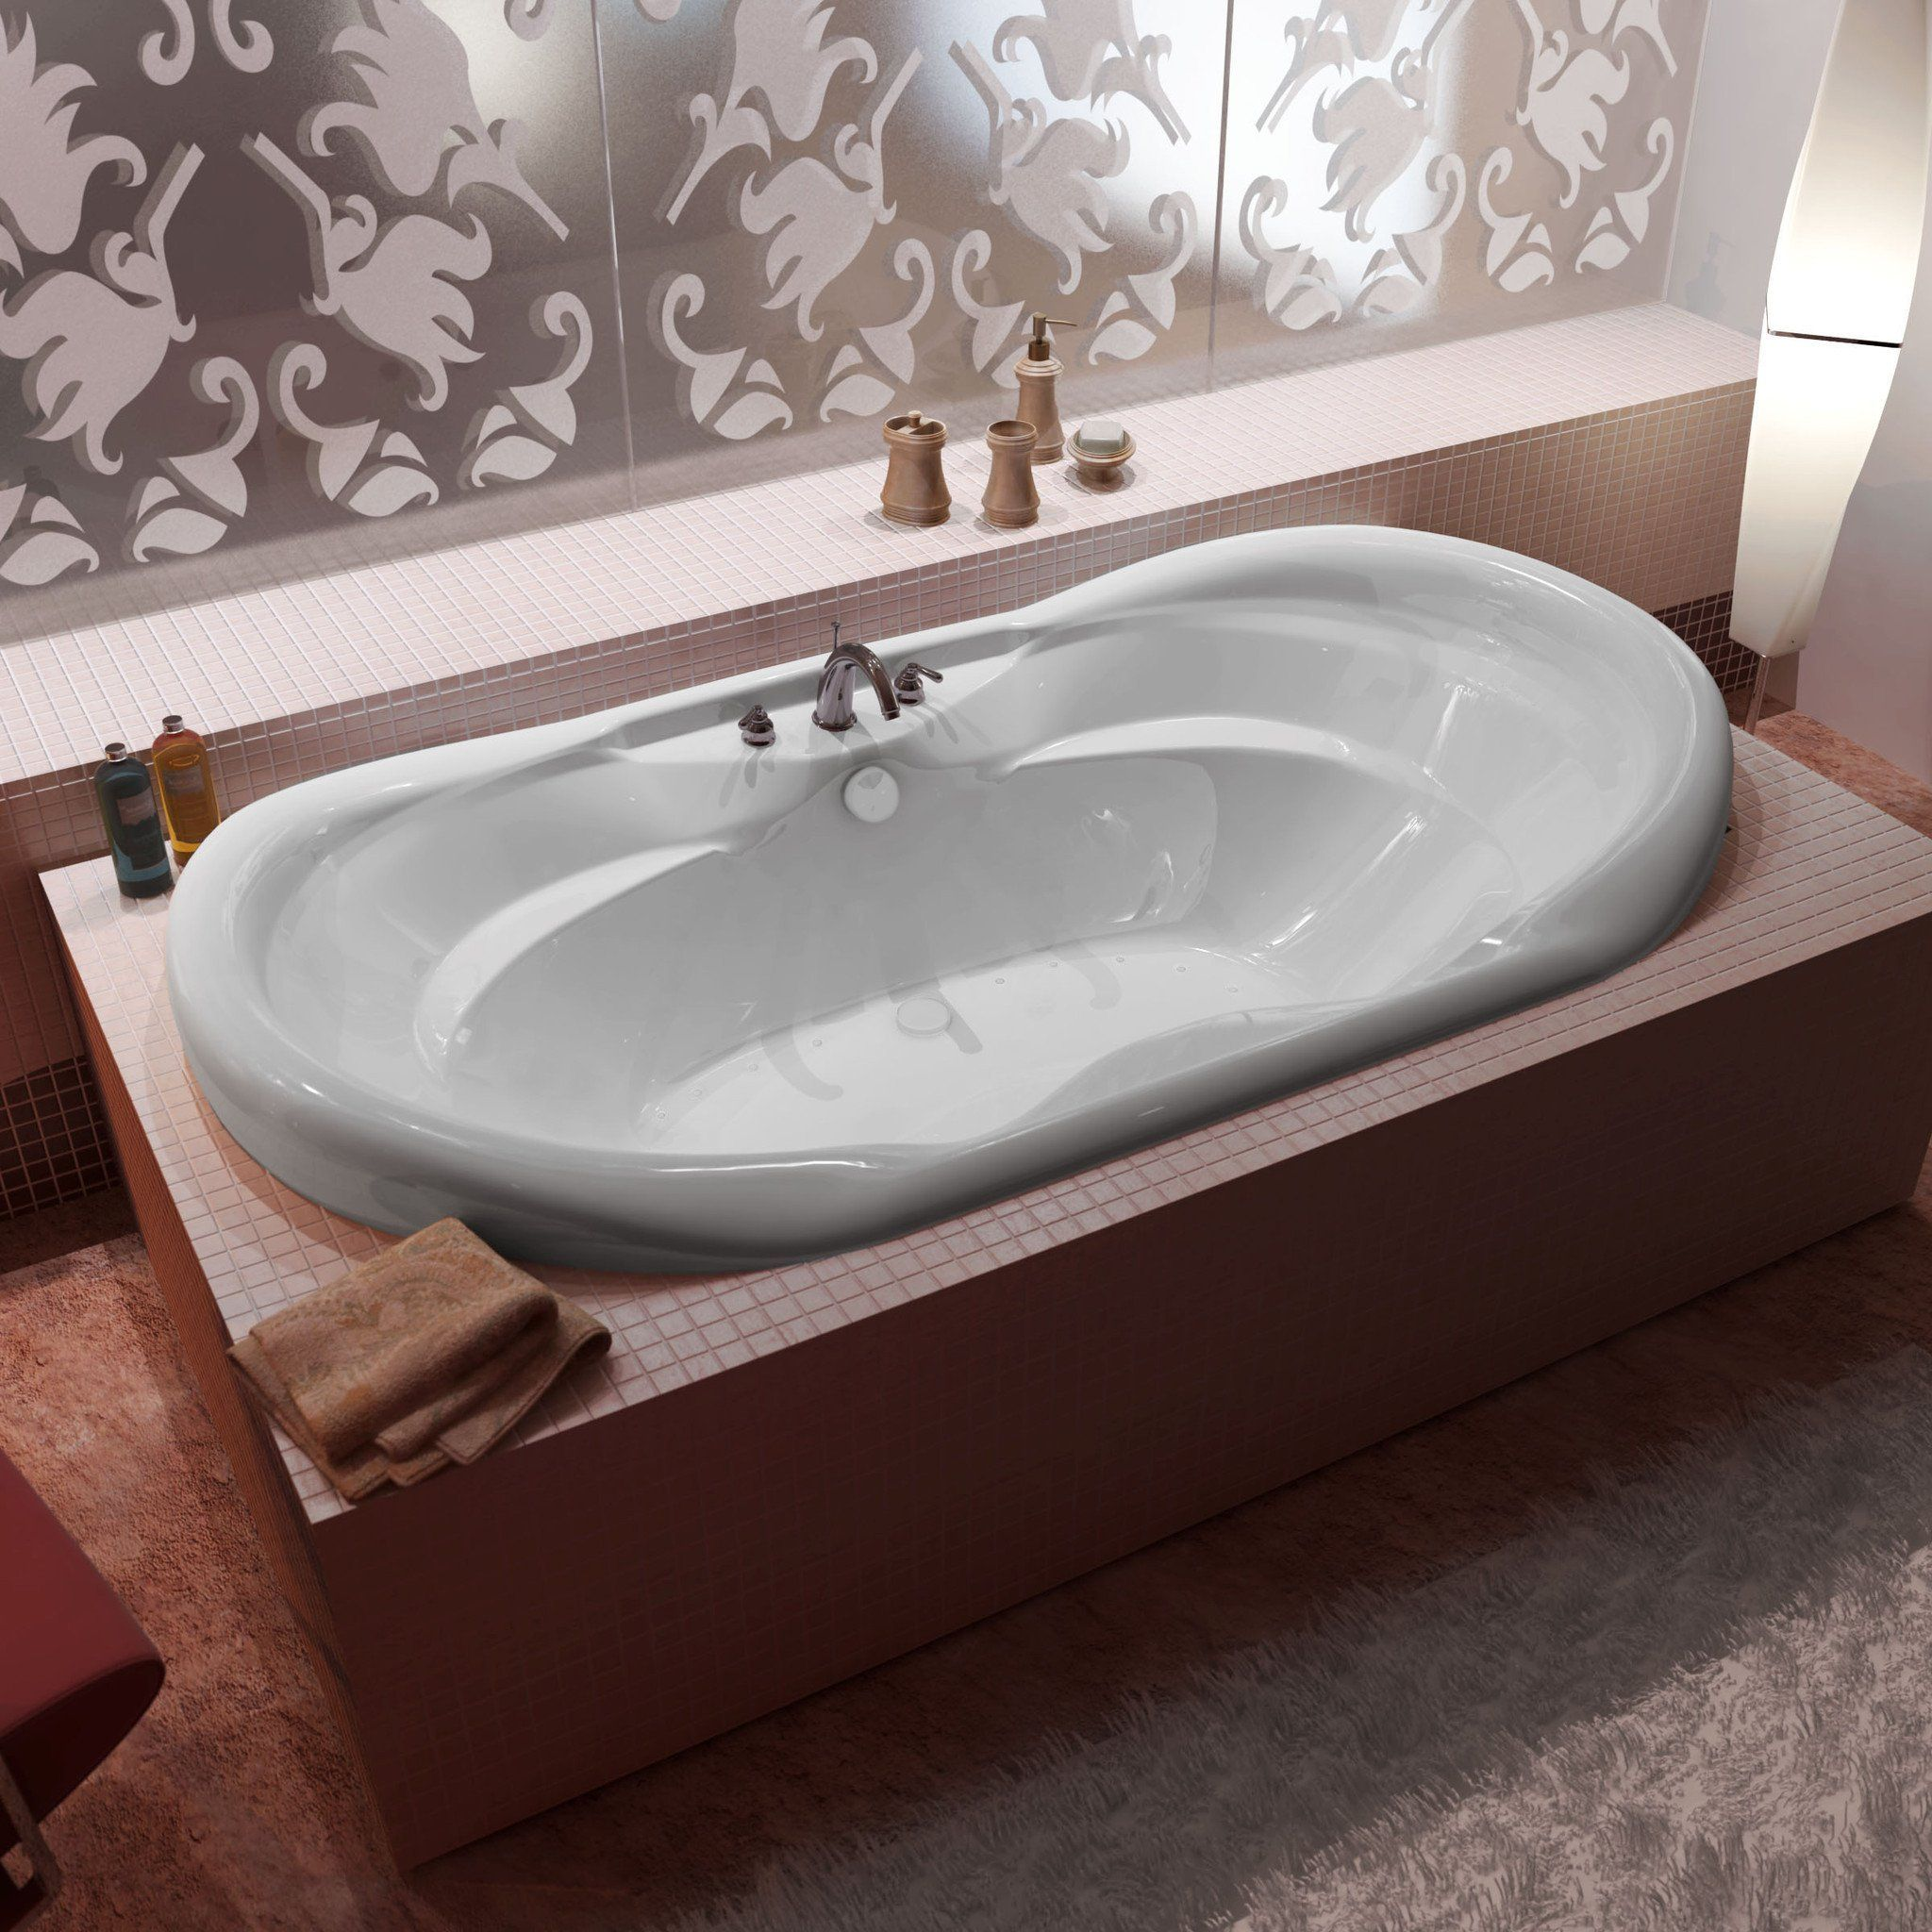 Atlantis Whirlpools 4170ial Indulgence 41 X 70 Oval Air Jetted